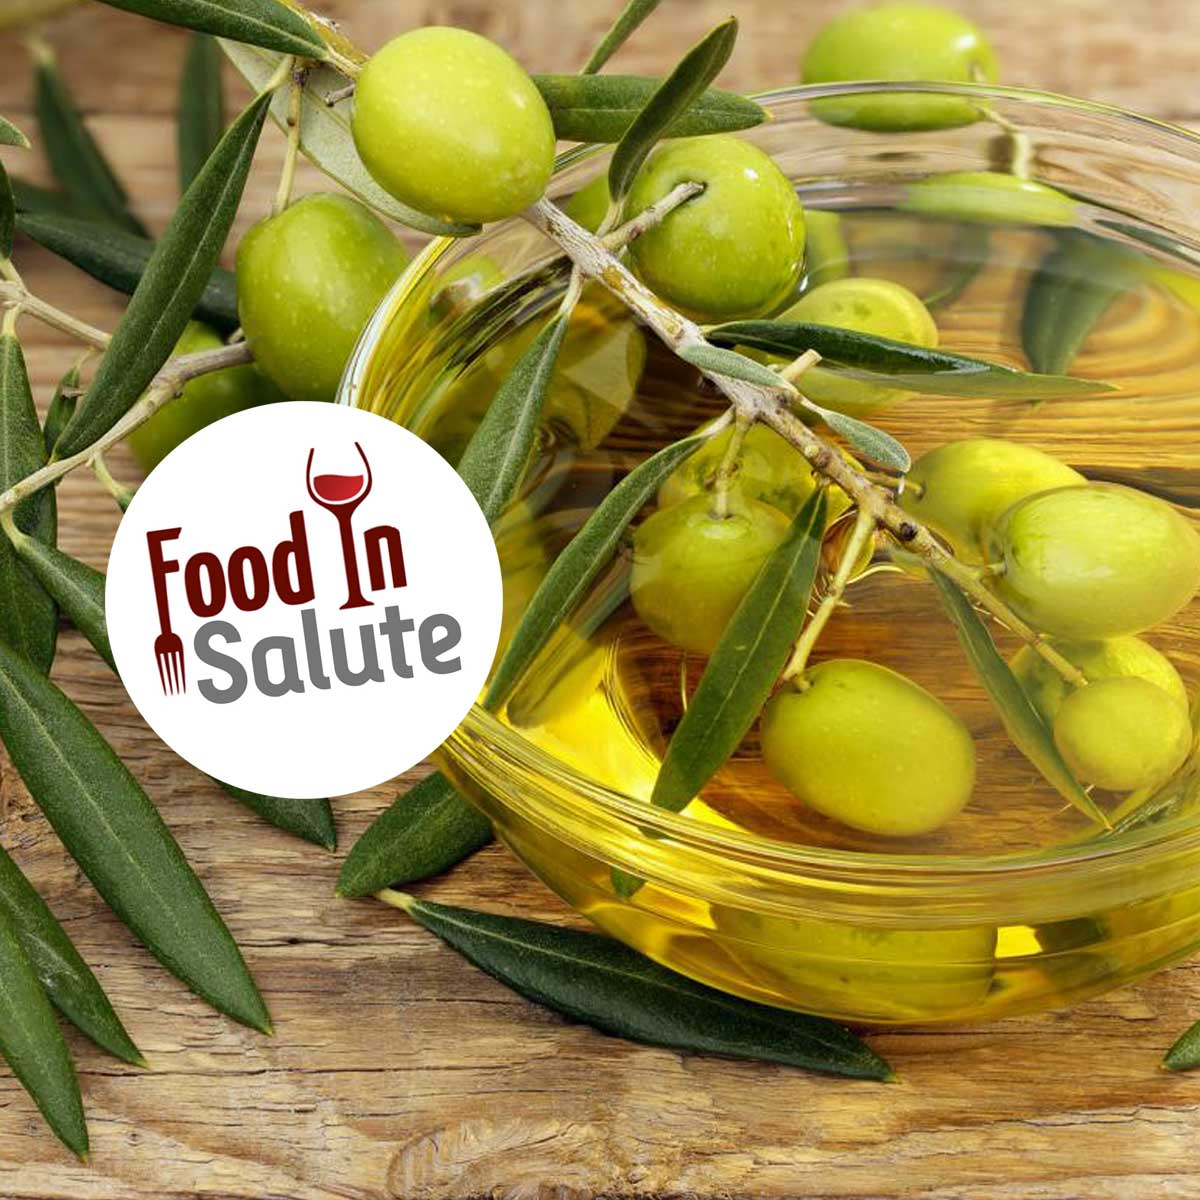 FOOD IN SALUTE - L'OLIO DI OLIVA